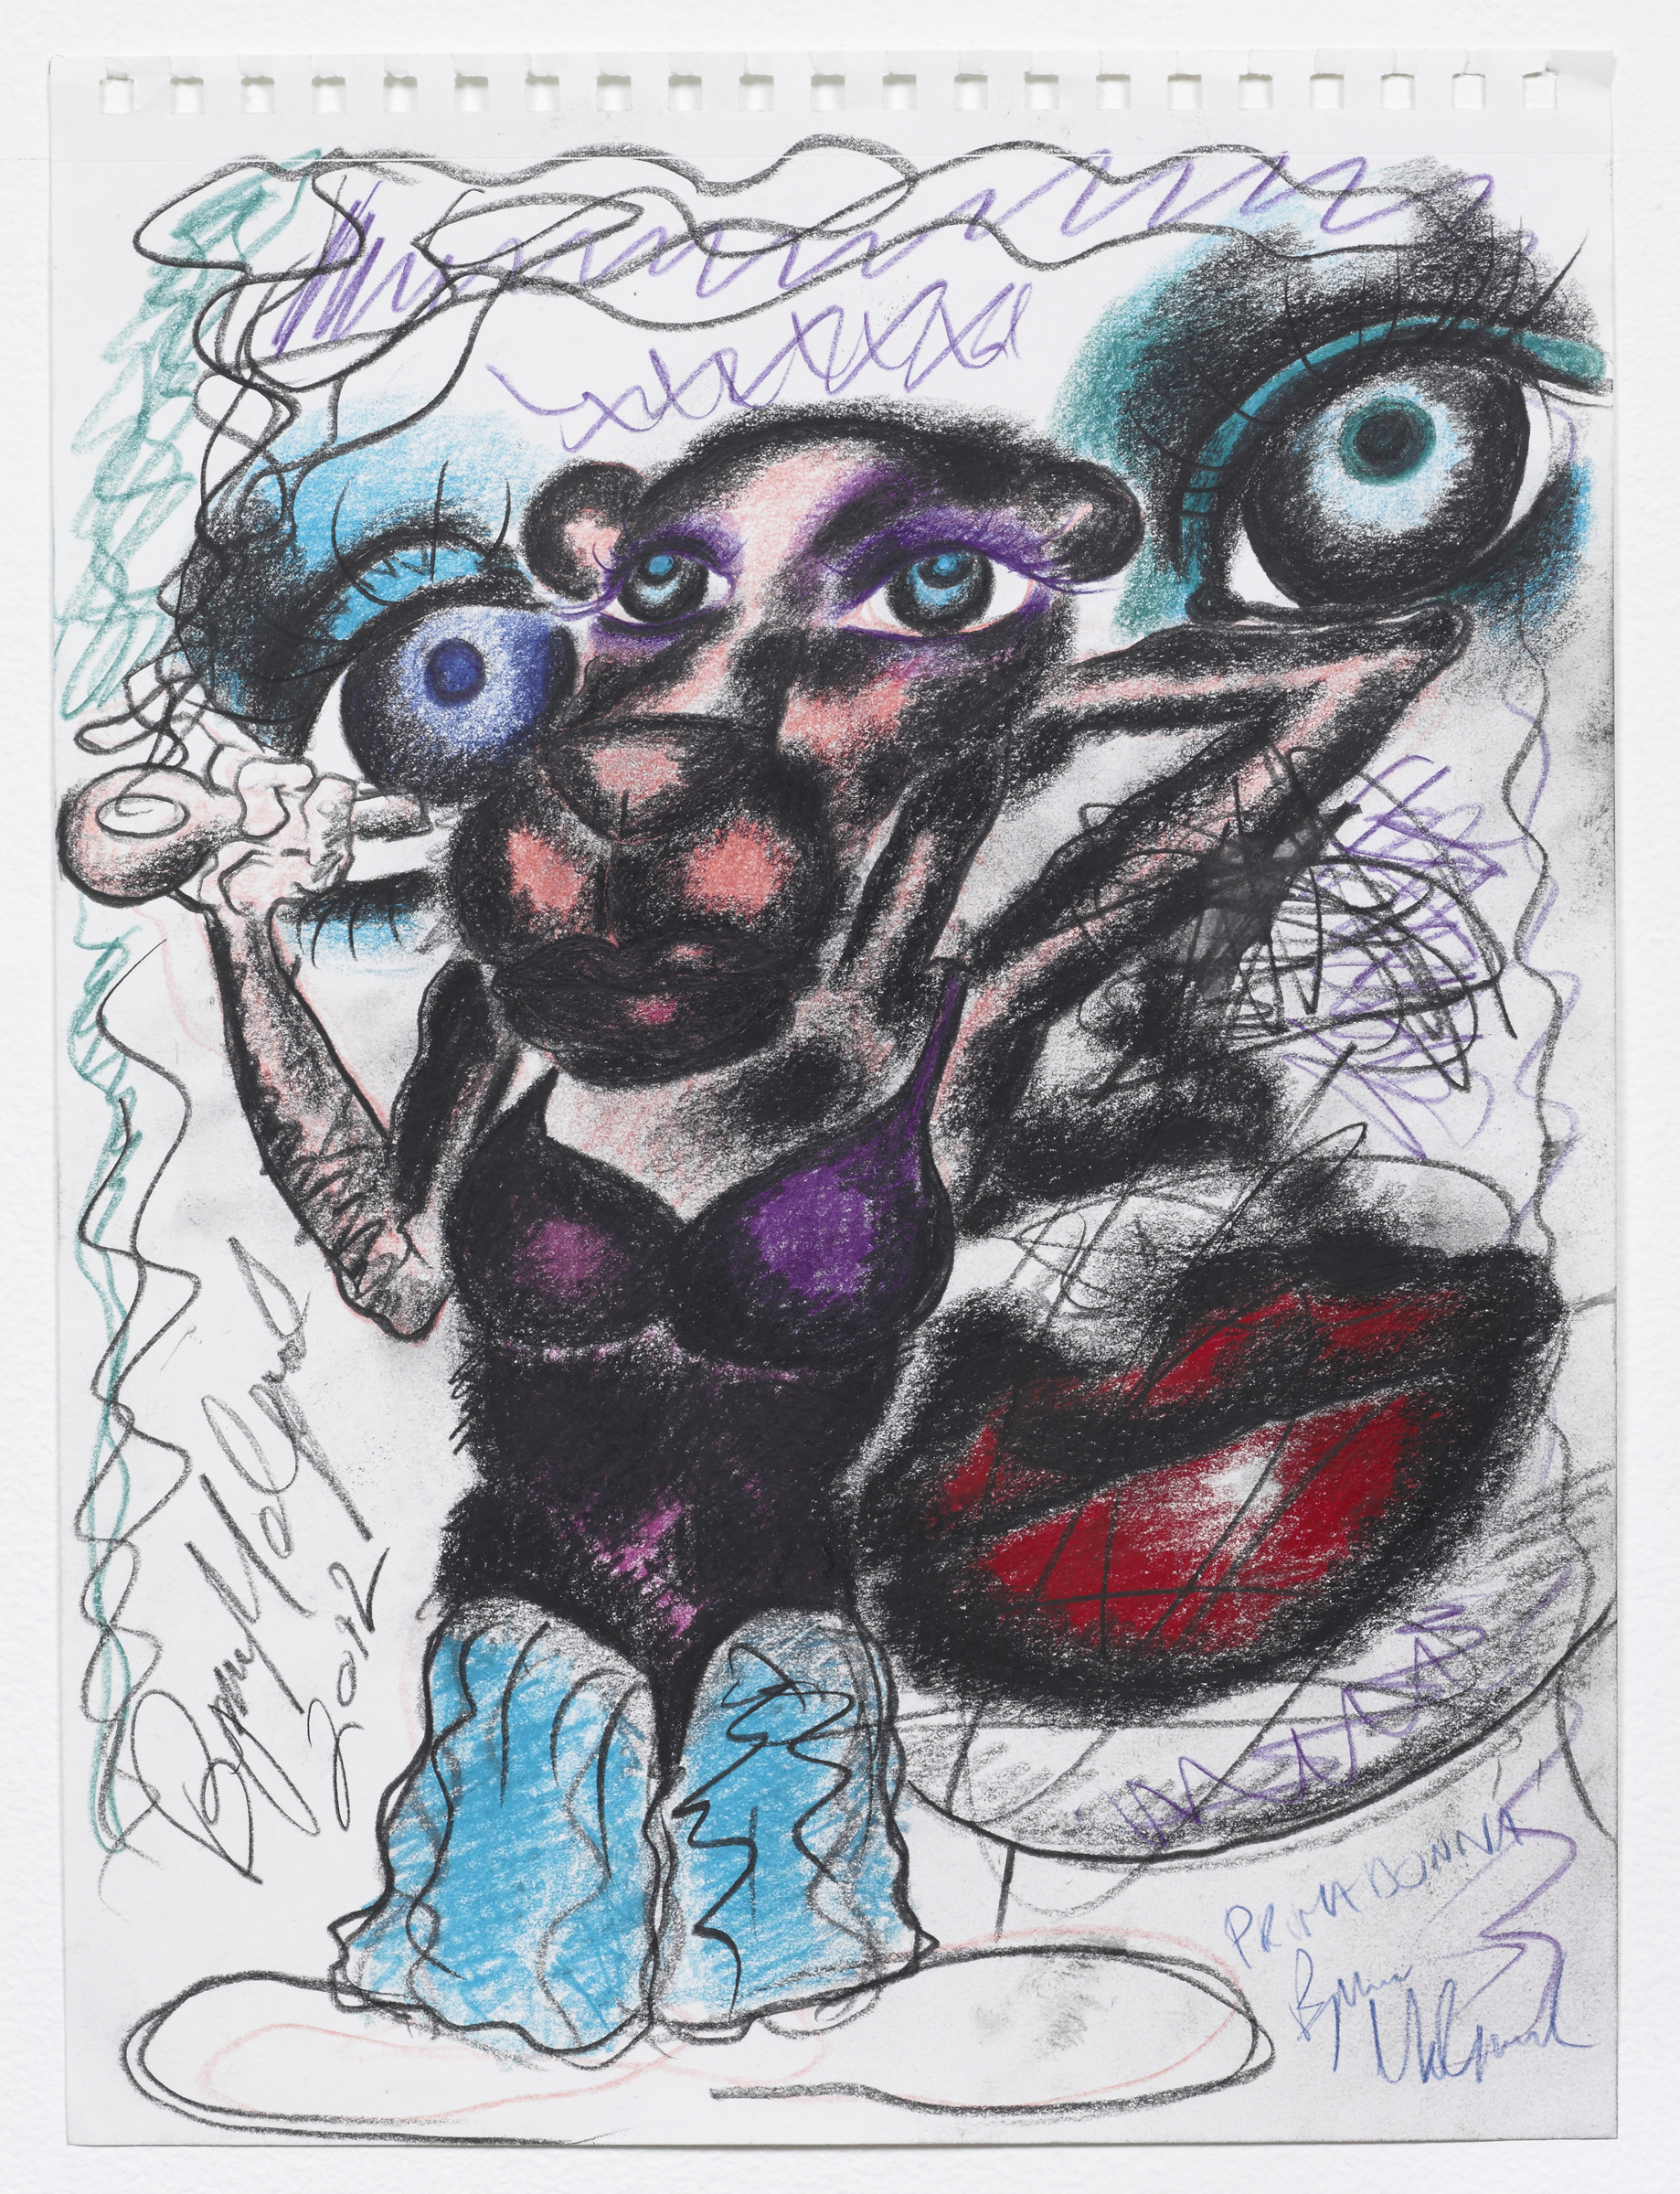 Bjarne Melgaard, Untitled , 2012, colored pencil on paper, 14.5 x 11 in